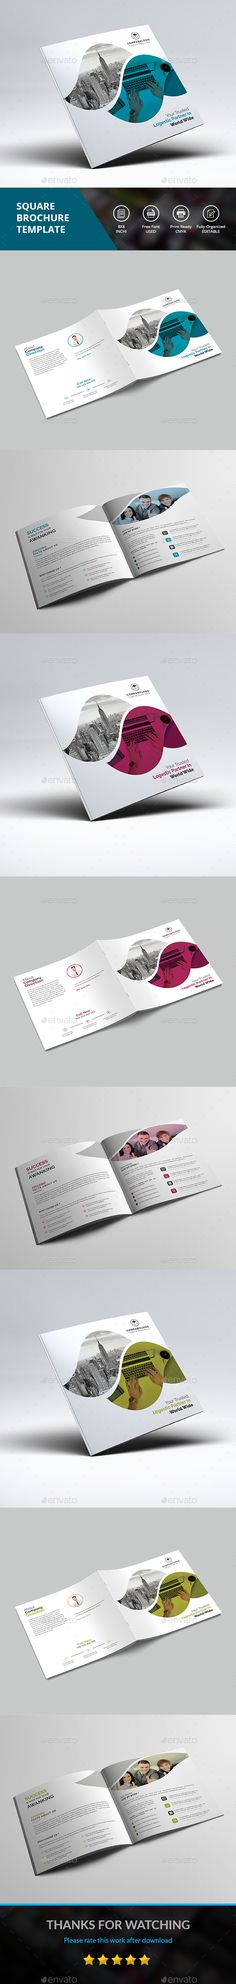 Square Brochure Brochures Corporate Brochure And Brochure Template